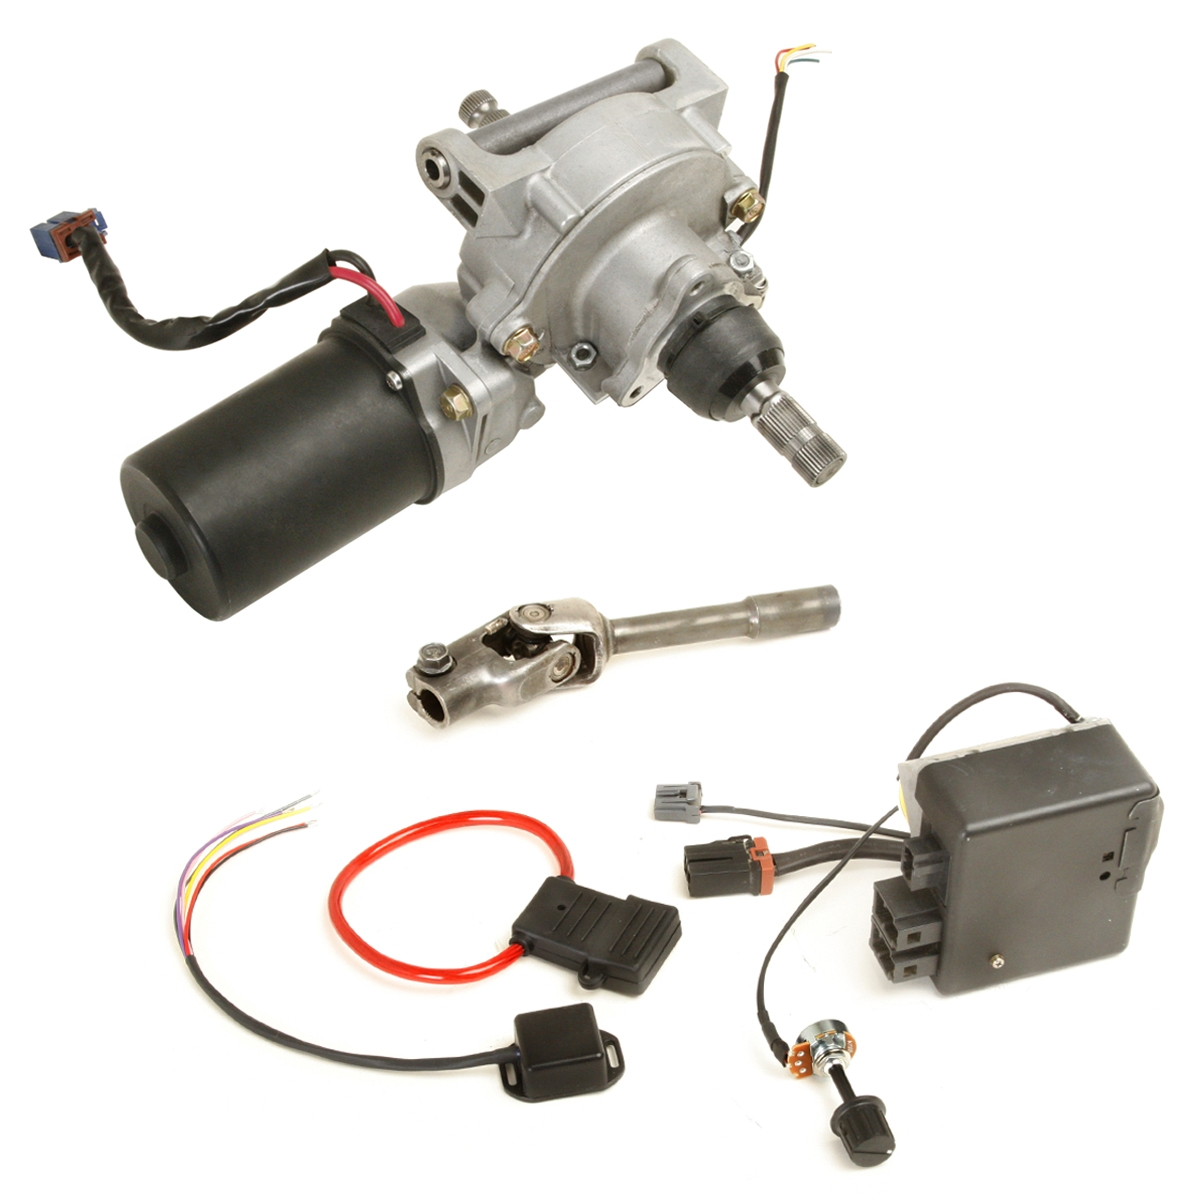 E Power Steering Kits